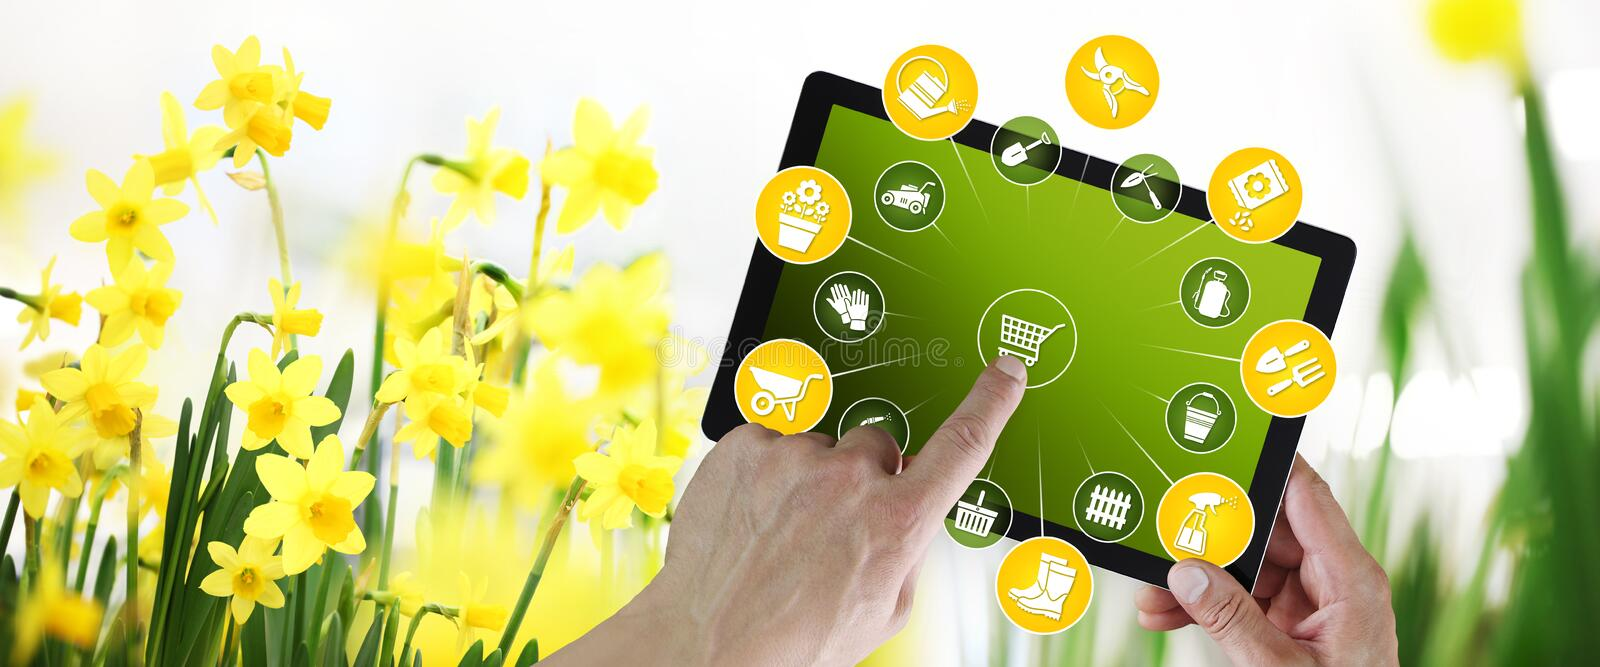 Gardening equipment e-commerce concept, online shopping on digital tablet, hand pointing and touch screen with tools icons, on stock illustration